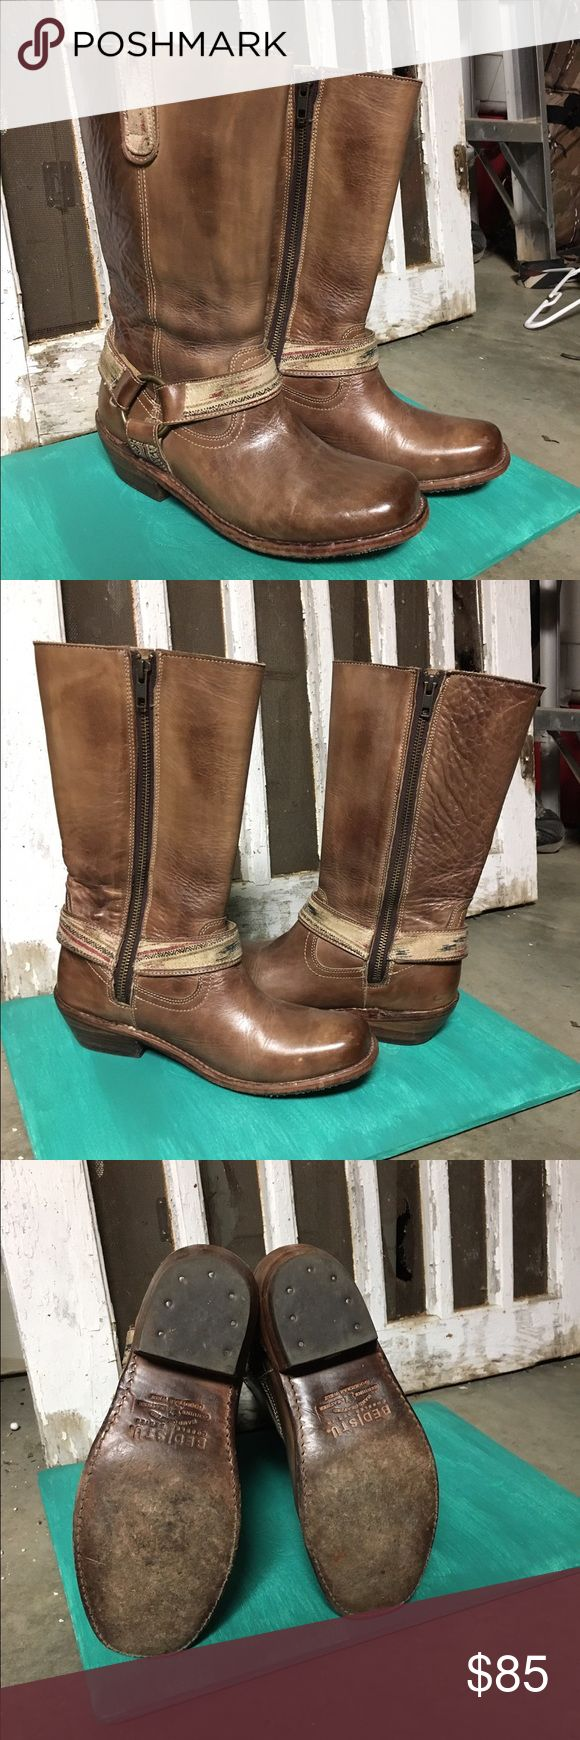 Bed Stu Boots Size 8.5 Bed Stu Boots Size 8.5, worm twice, true to size Bed Stu Shoes Heeled Boots